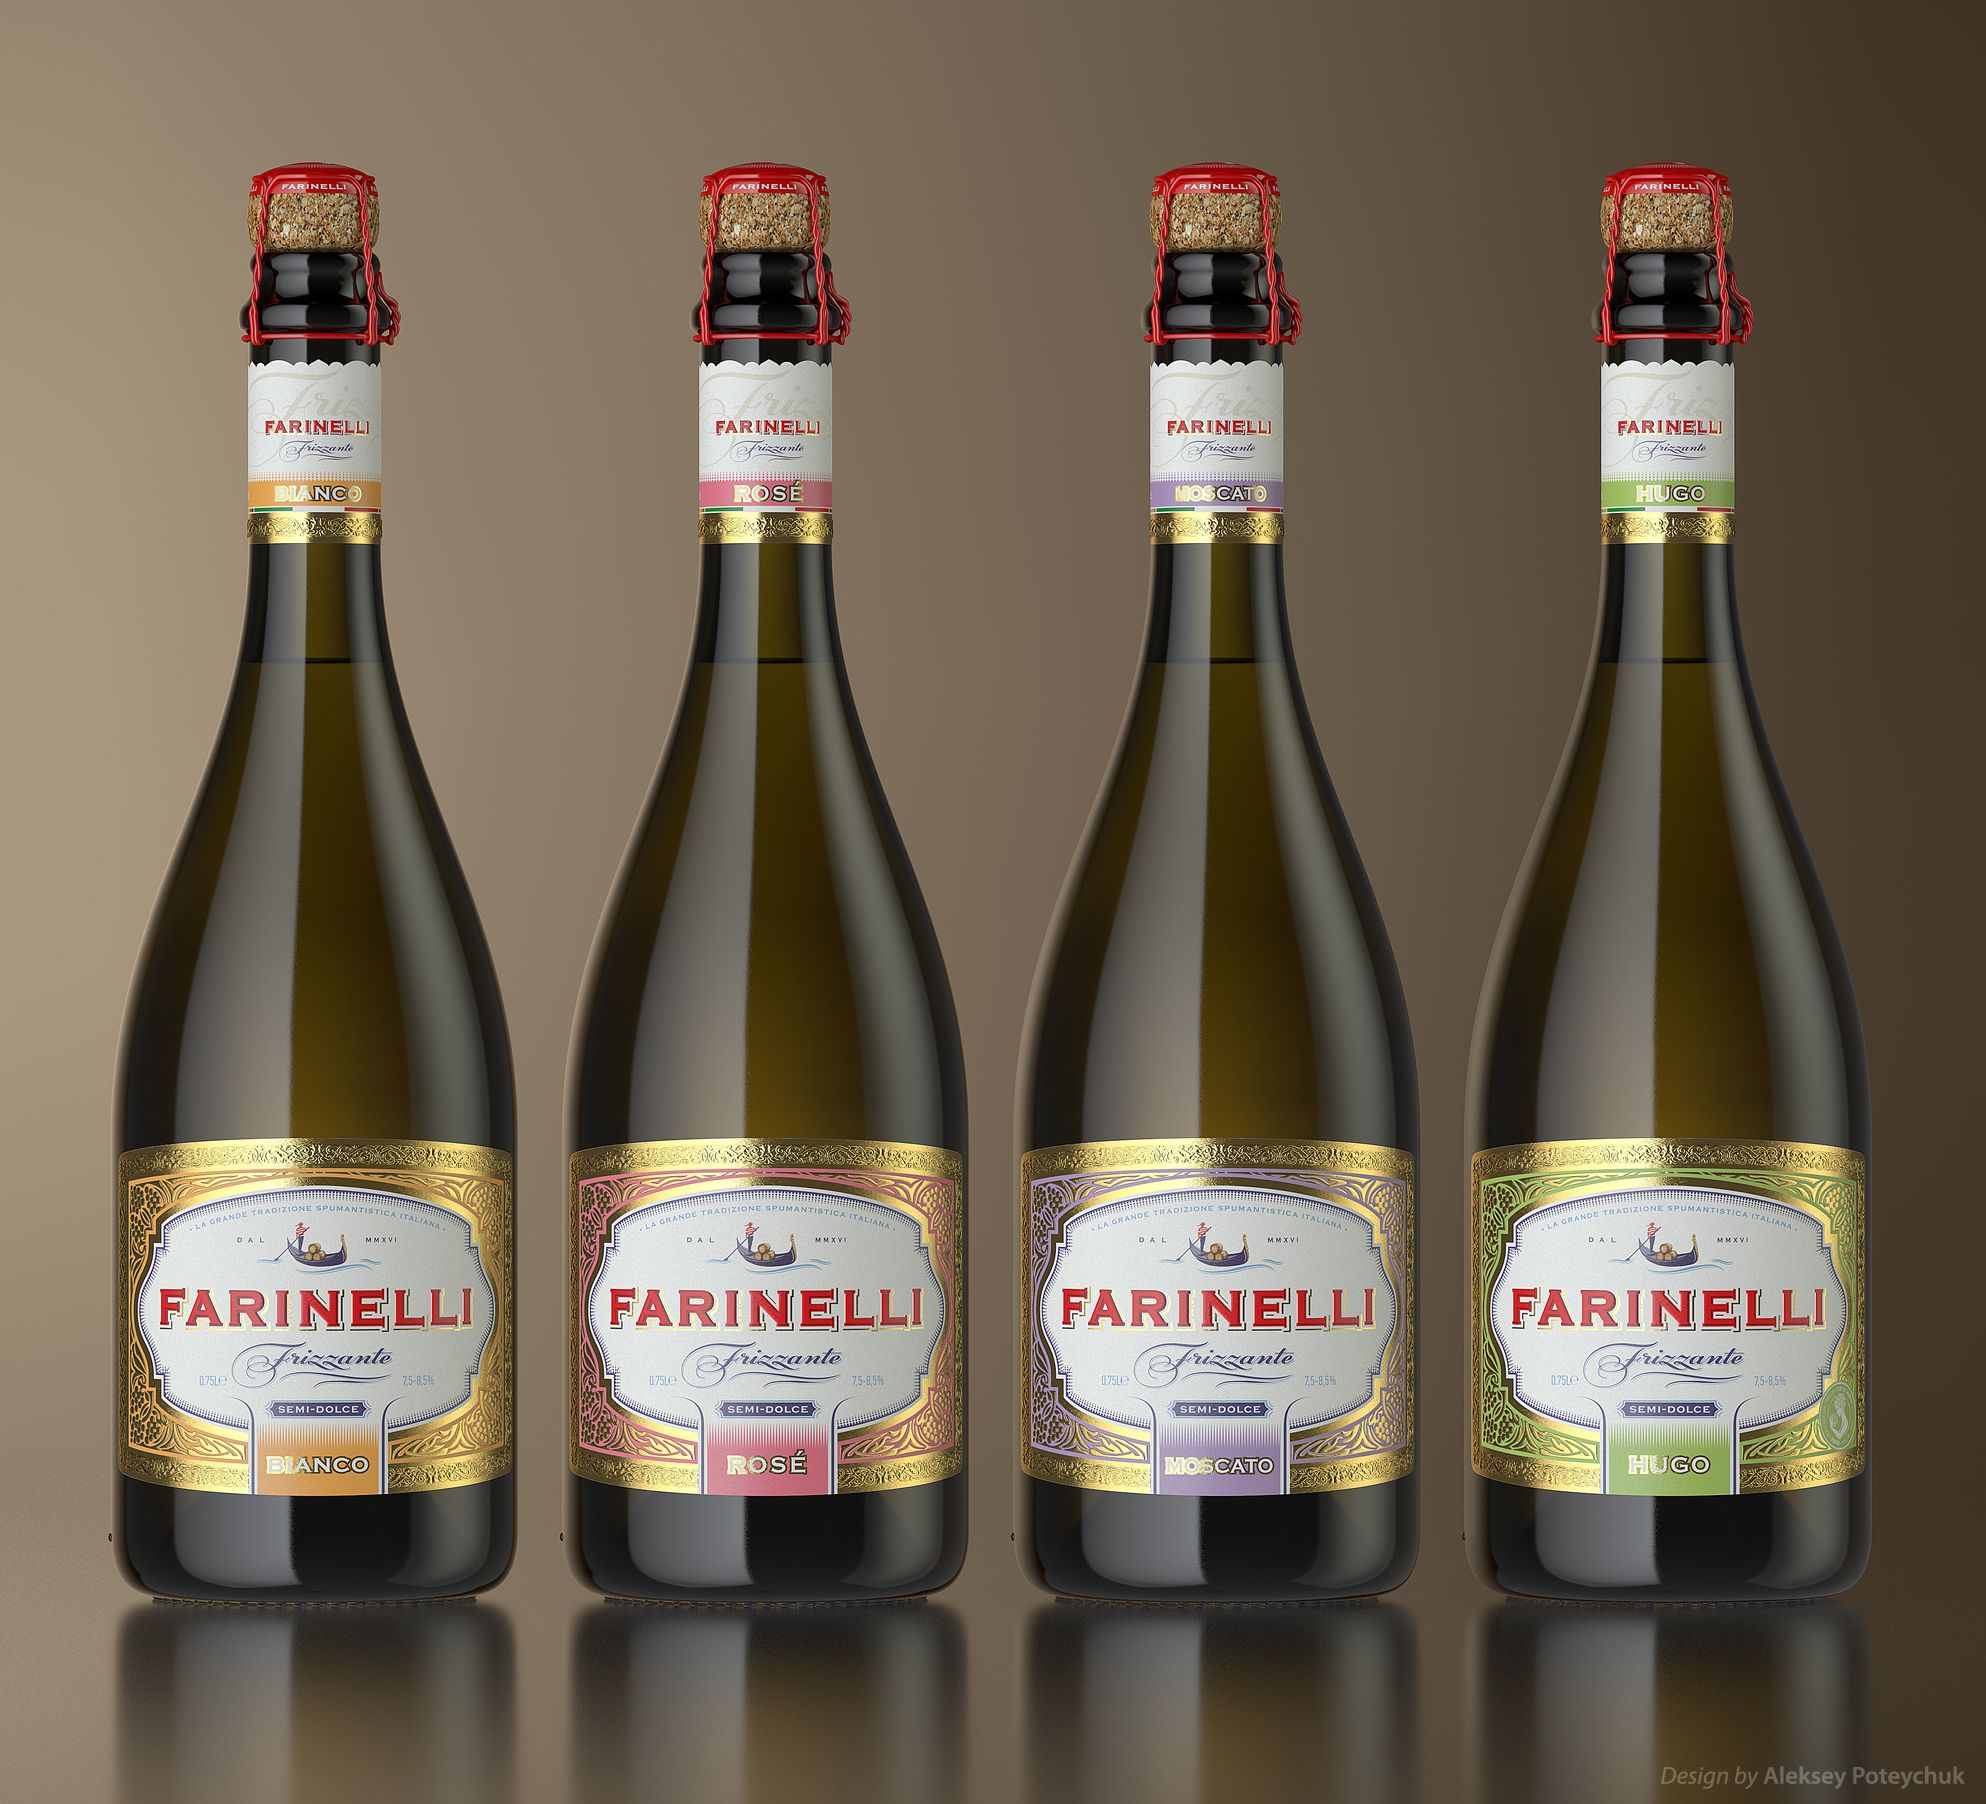 Farinelli Frizzante Wine Packaging Sparkling Wine Packaging Design